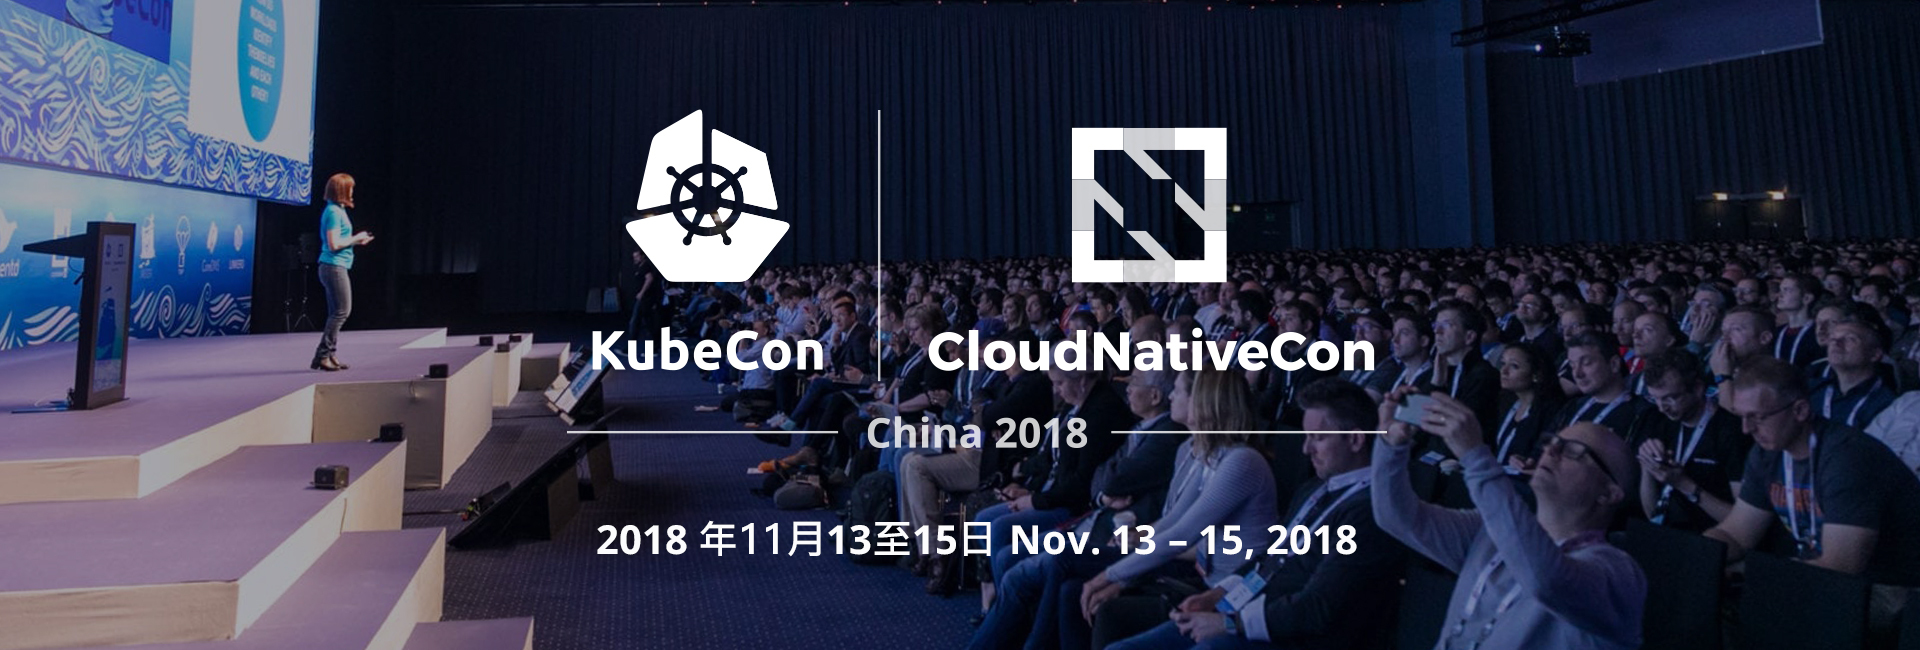 KubeCon + CloudNativeCon China 2018